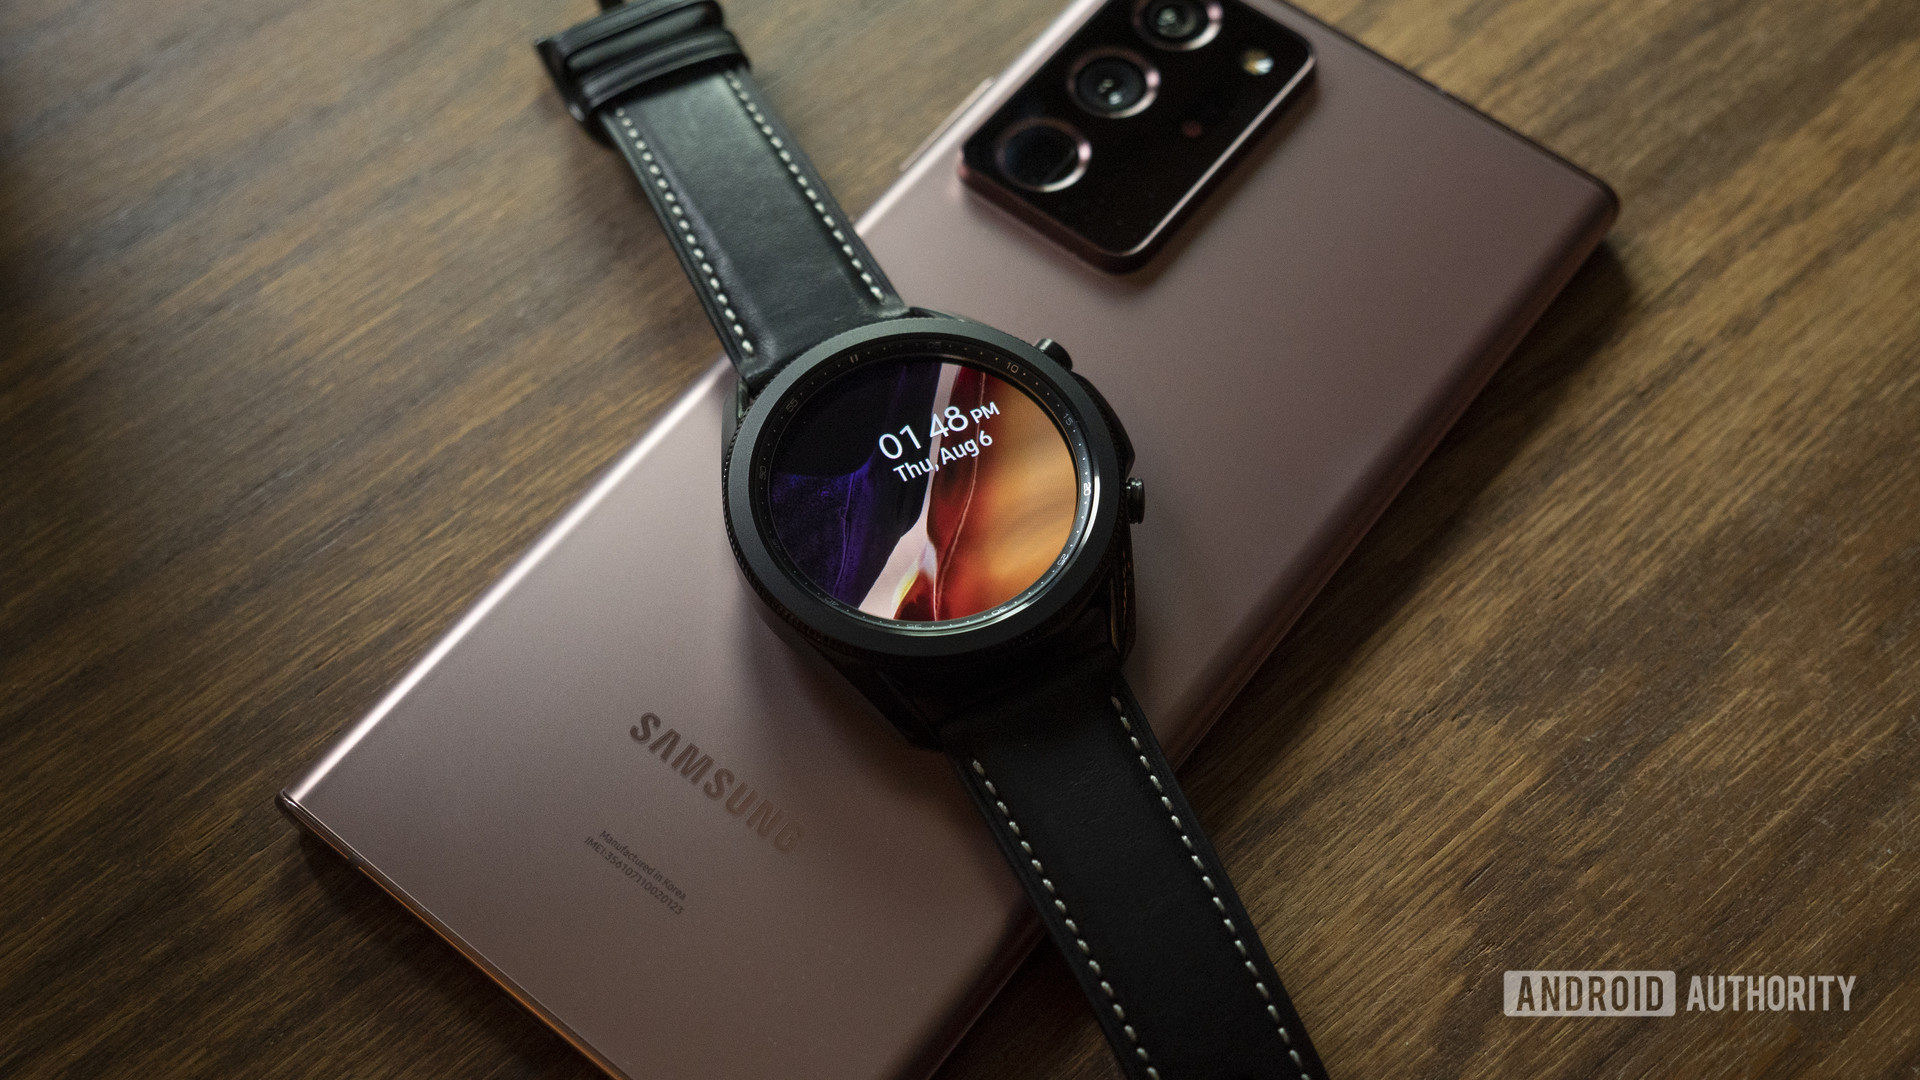 samsung galaxy watch 3 review with samsung galaxy note 20 ultra